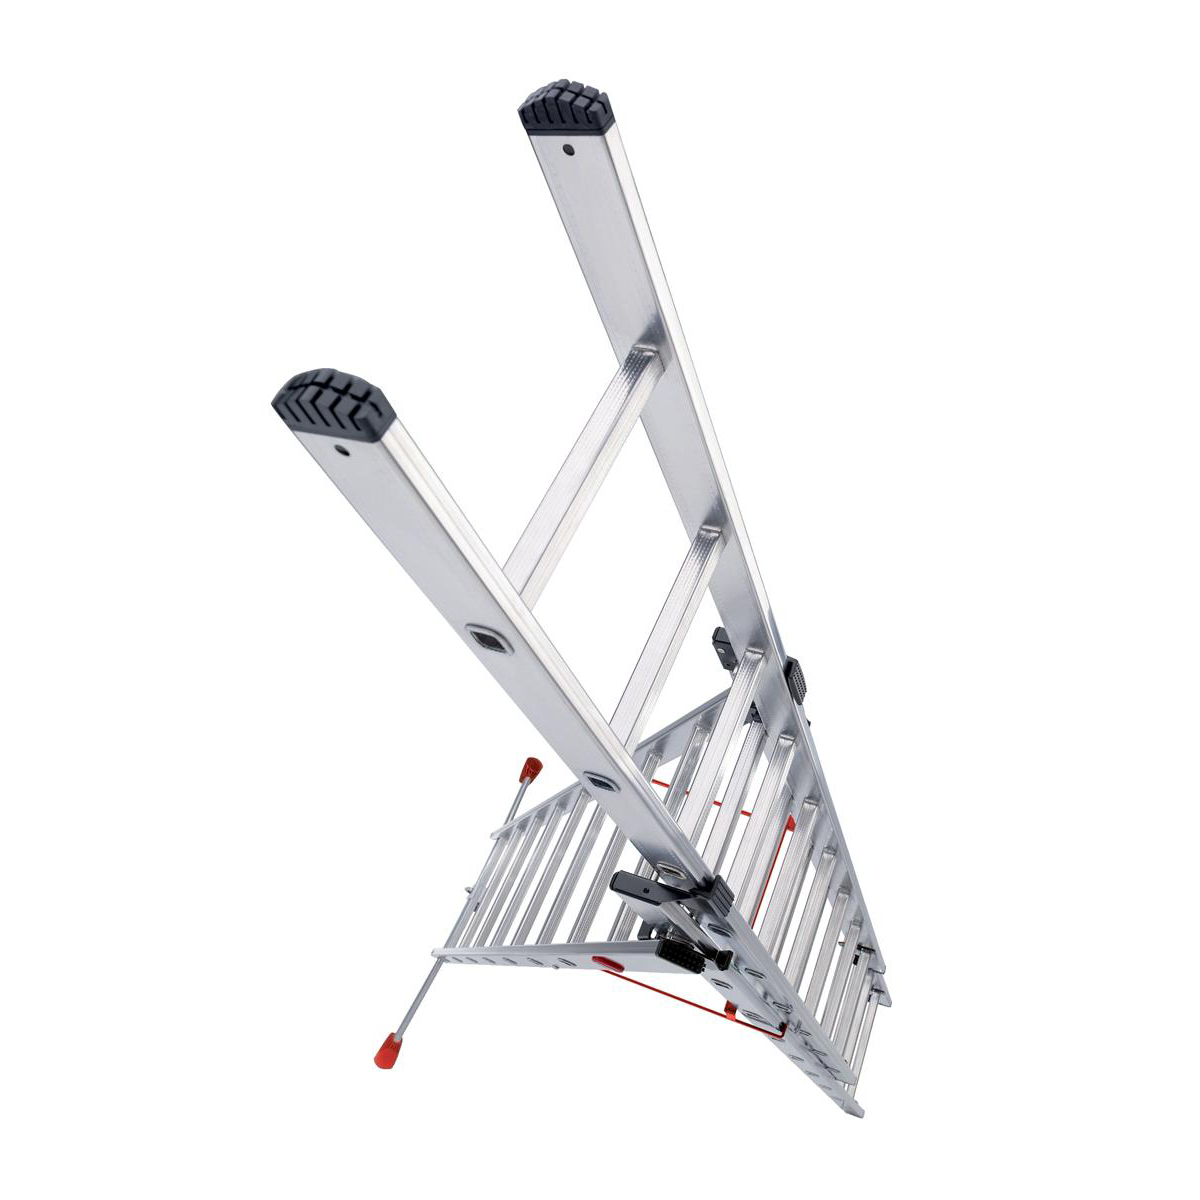 Combi Ladder 3 Section Capacity 150kg Rungs 2x9 and 1x8 for H6.7m 21.7kg Aluminium